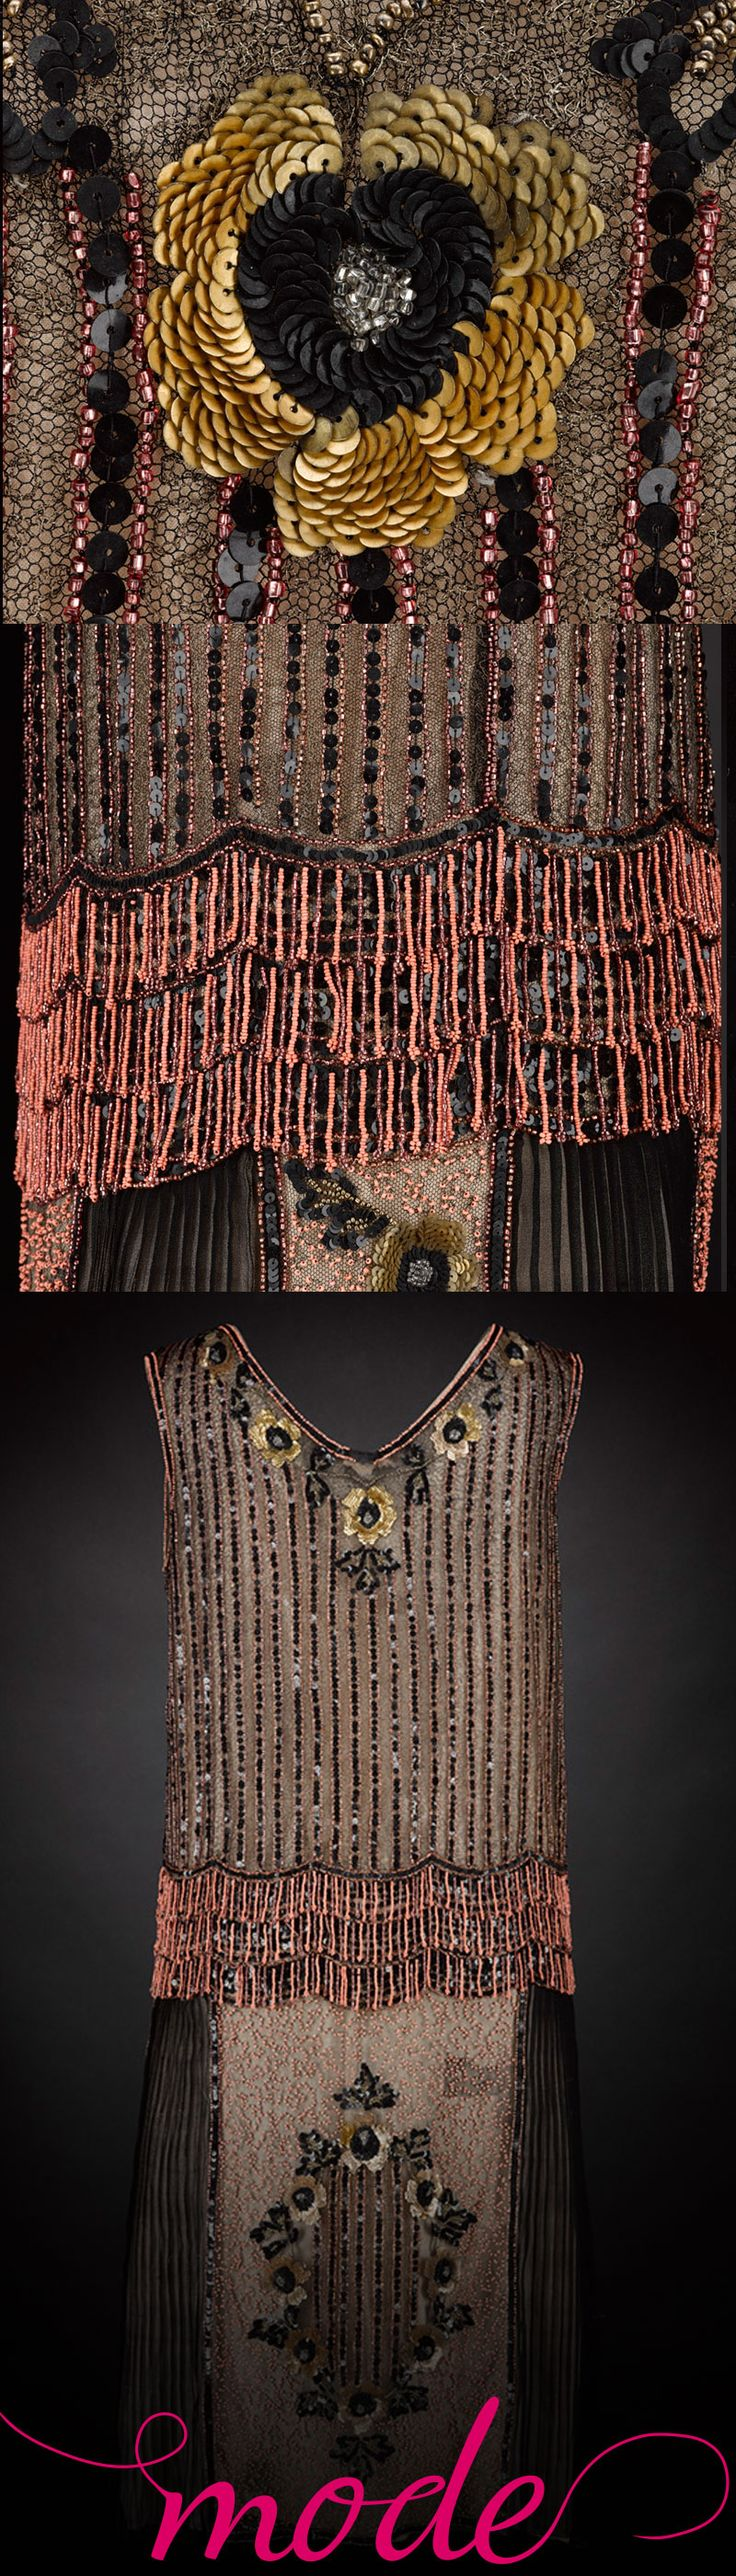 With its intricate beading and sleek silhouette, this glamorous flapper dress from 1927 recalls the Great Gatsby era.  Find out more about this dress and many more at http://www.nms.ac.uk/mode. Mode is your personal, portable guide to the new Fashion and Style gallery at the National Museum of Scotland. Luxuriate in couture details with close-up images and 360 views, and discover everything from sumptuous fabrics and bespoke craftsmanship to cutting-edge design inspiration and fashion…